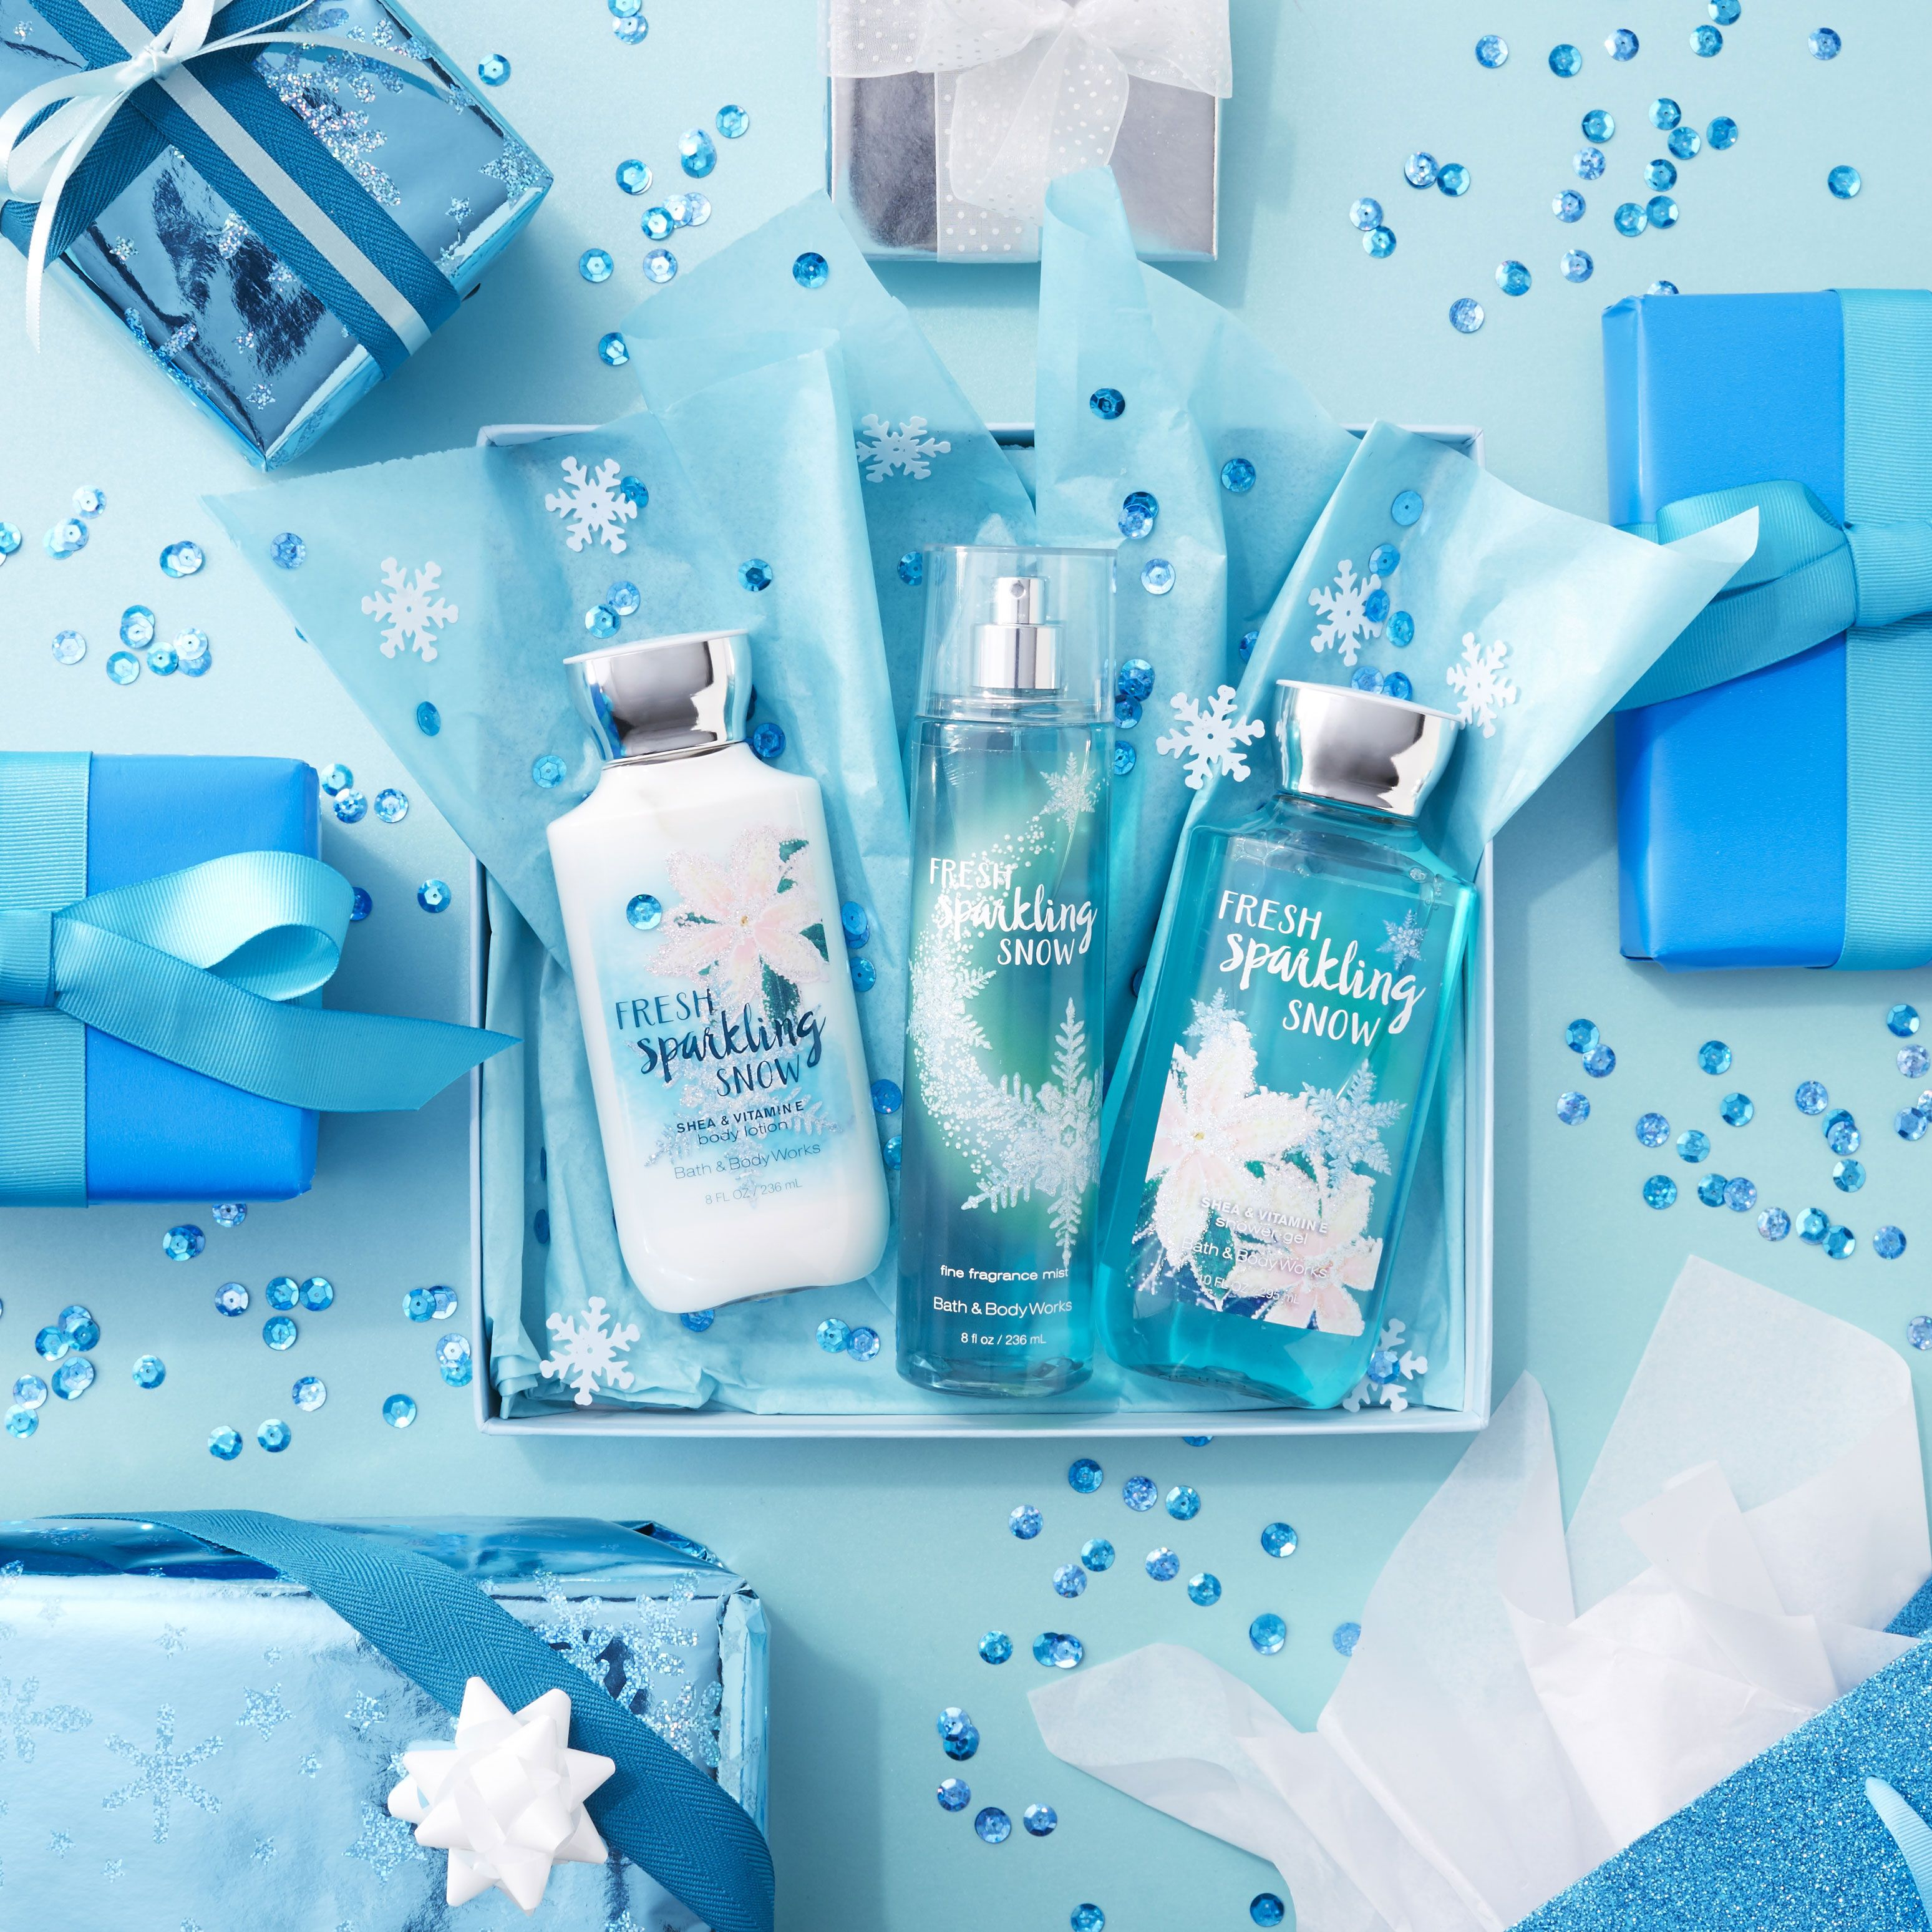 Fresh Sparkling Snow Is The Perfectchristmas Gift To Thrill Your